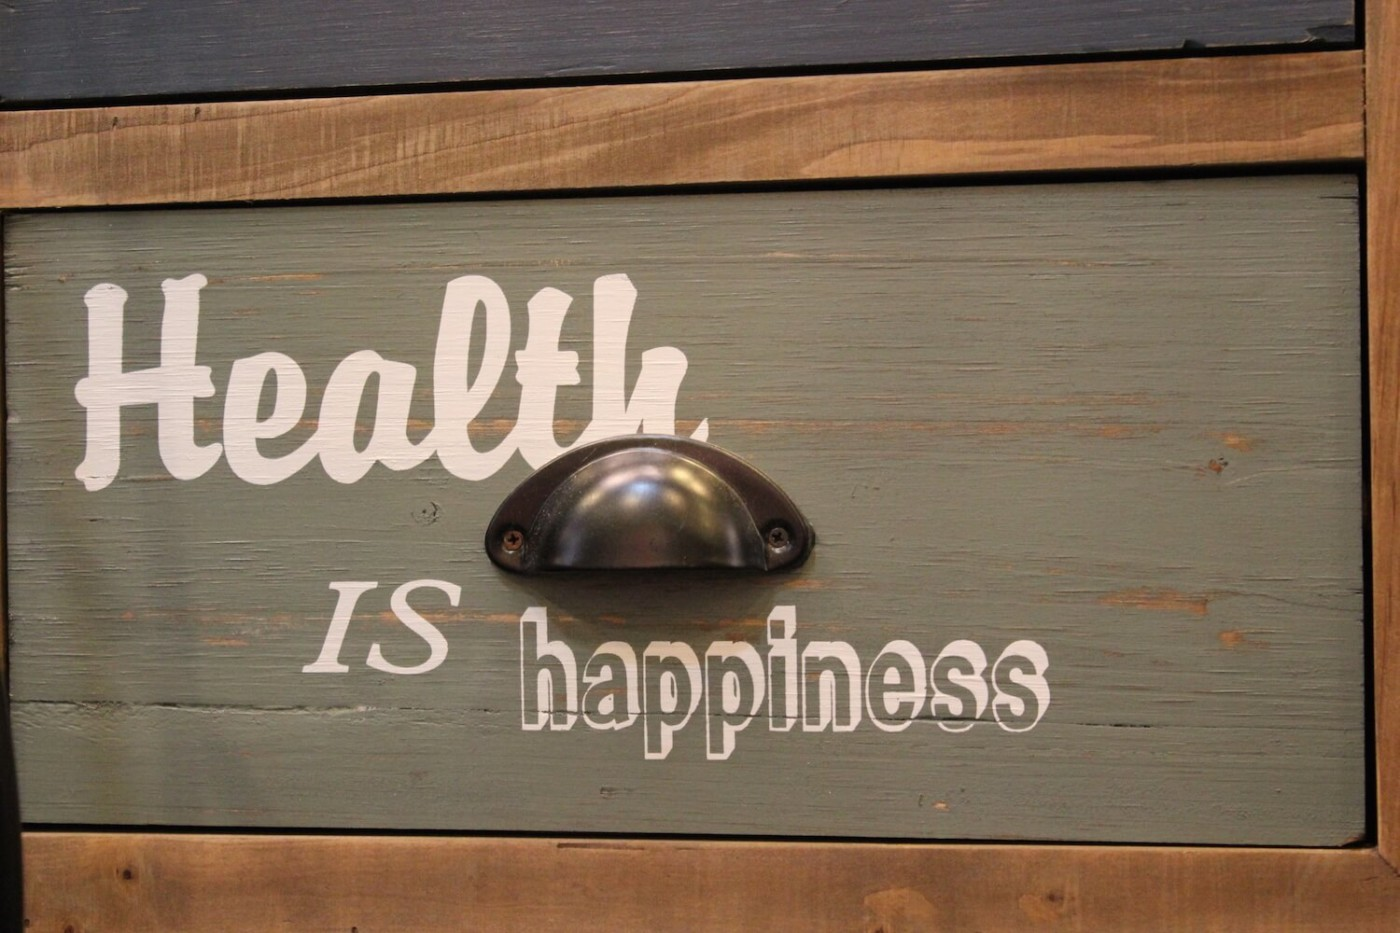 Health is happiness